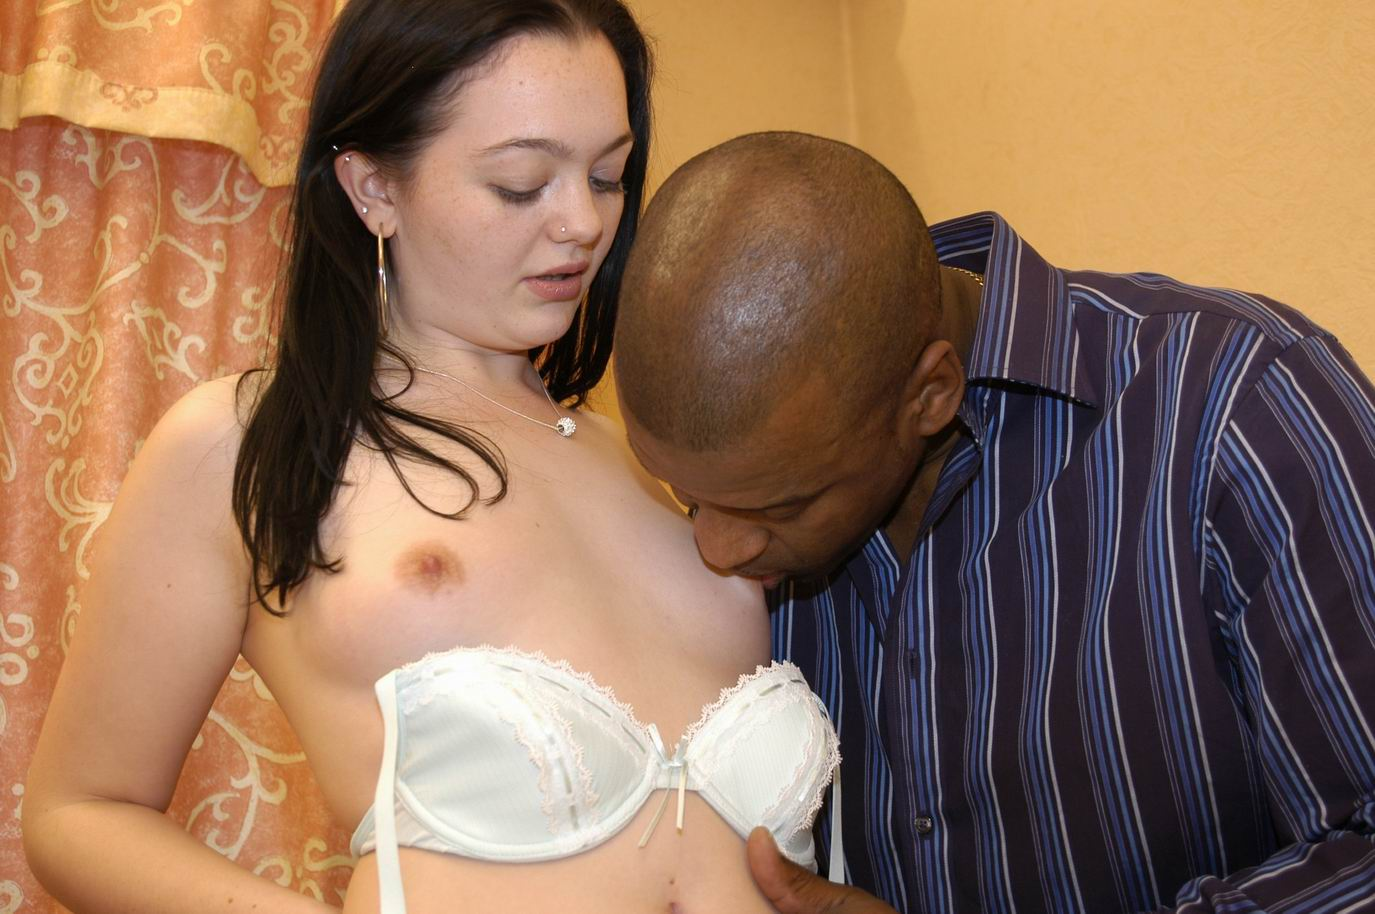 hot black on white download free full porn movies